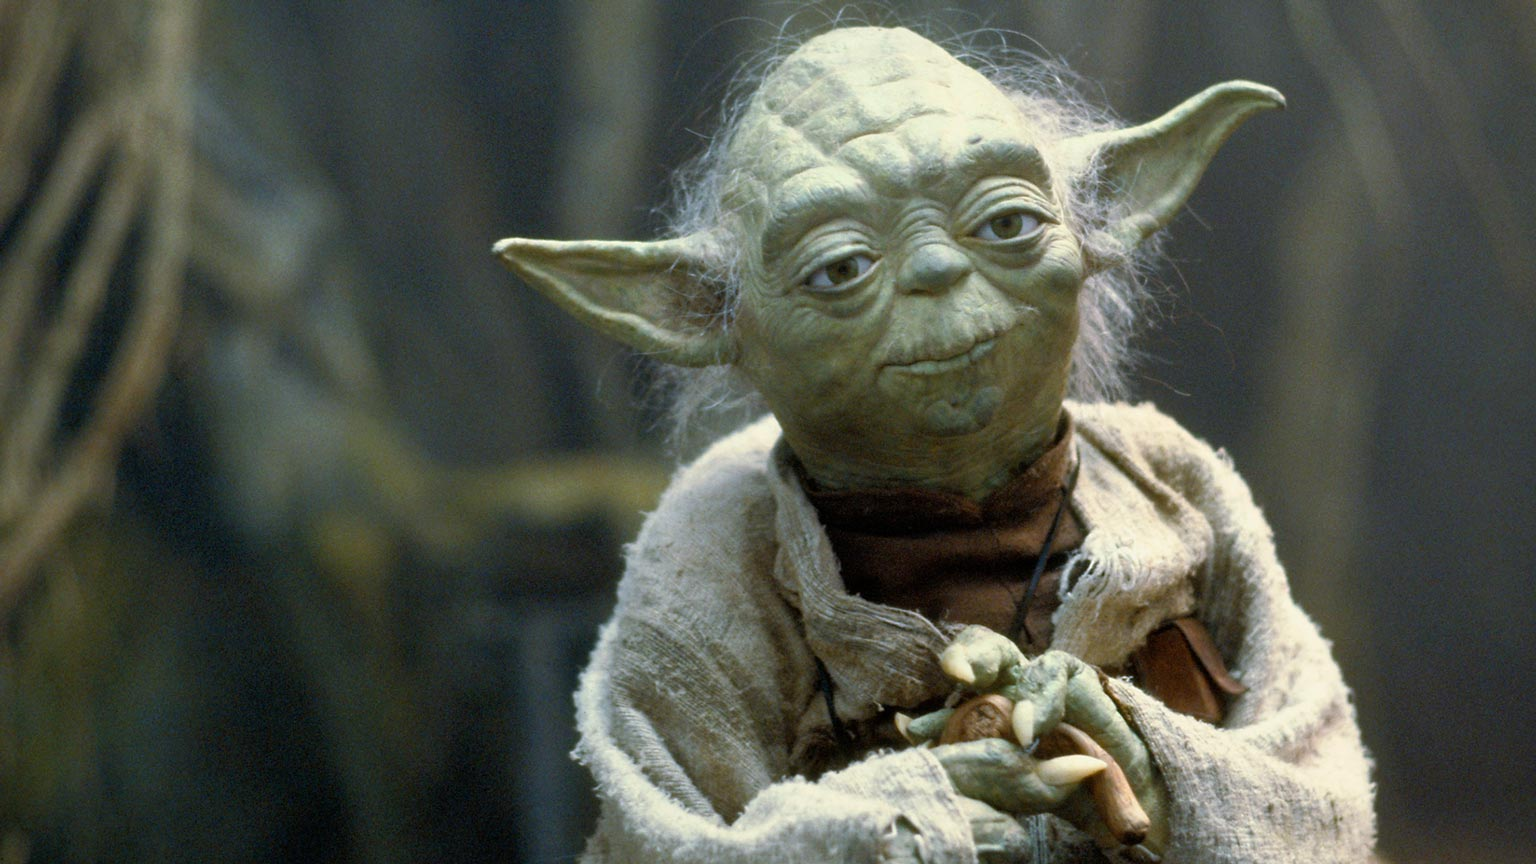 You can now call Yoda to wish you a good night